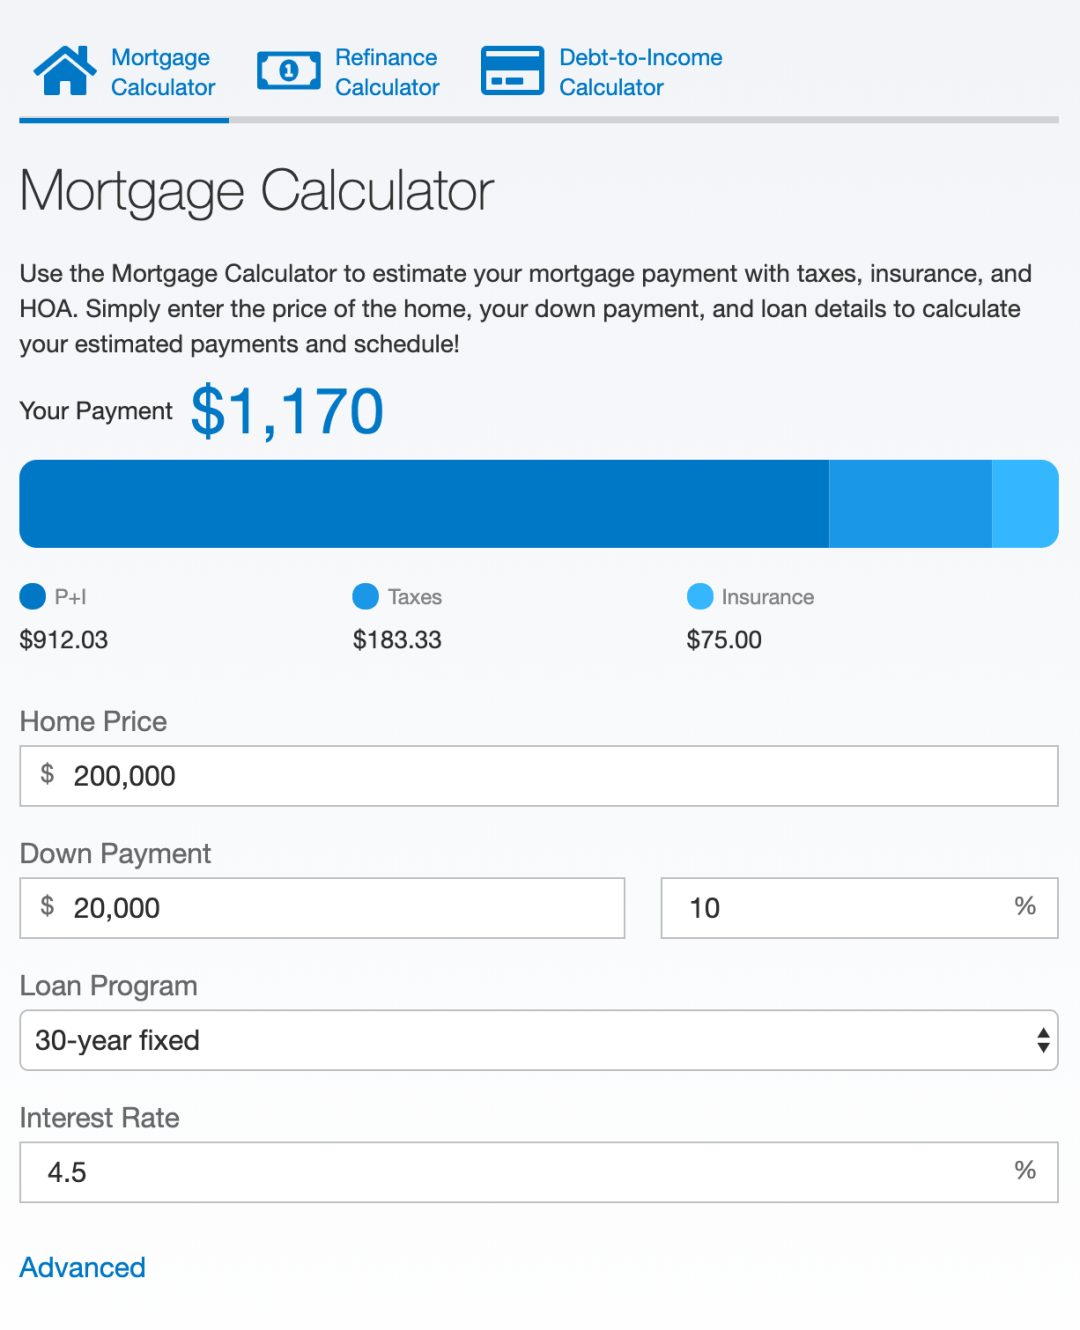 floify landing page mortgage refinance dti calculators